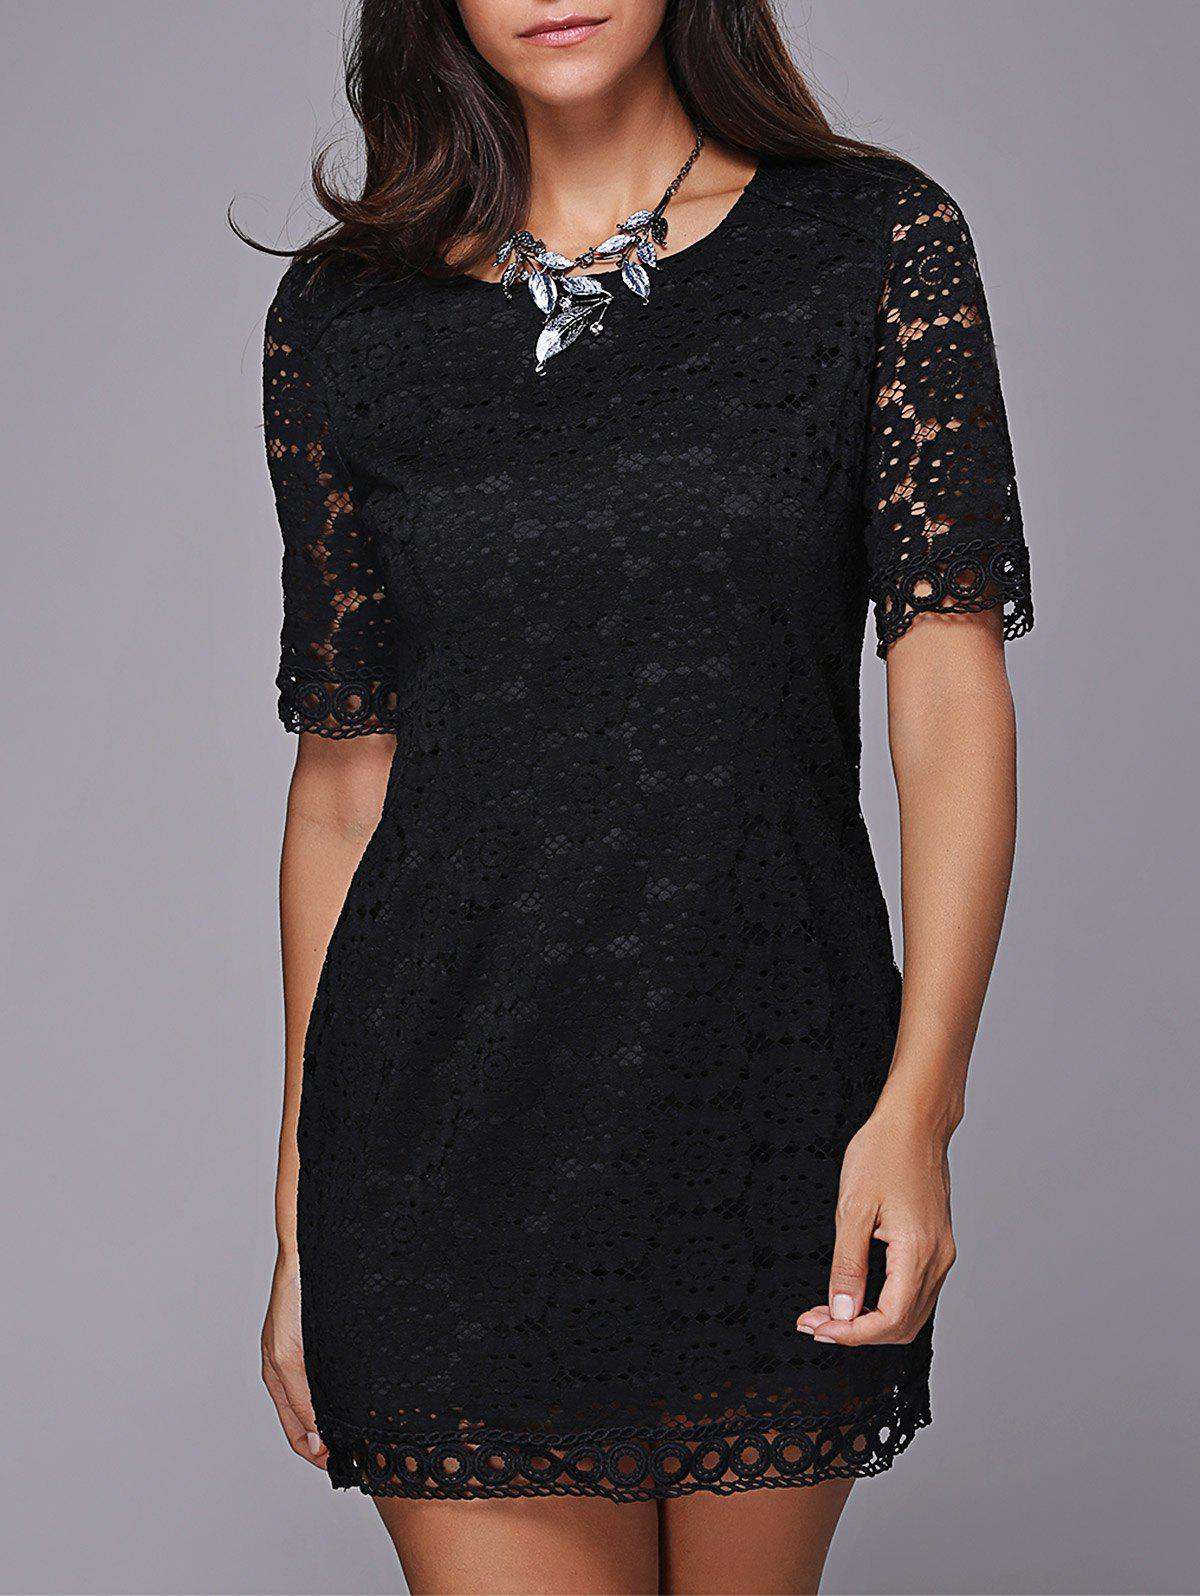 Trendy Short Sleeve Scoop Neck Lace Dress For Women - BLACK ONE SIZE(FIT SIZE XS TO M)